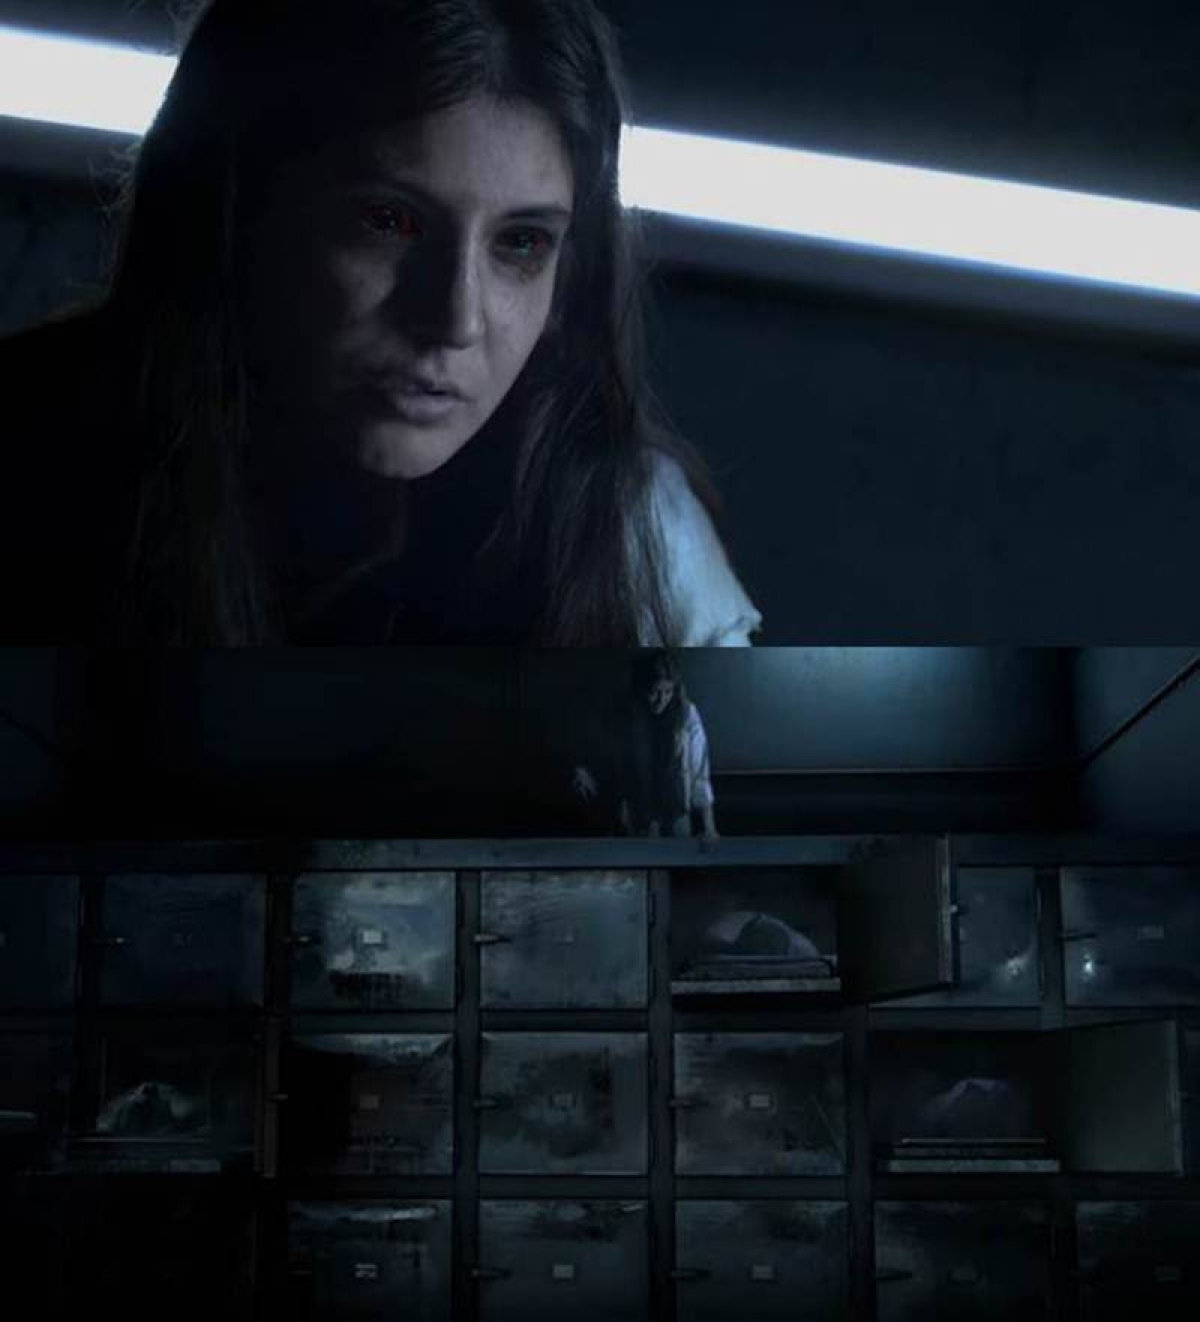 'Pari' screamer 6: Anushka Sharma at the morgue amongst dead bodies will spook you, watch video